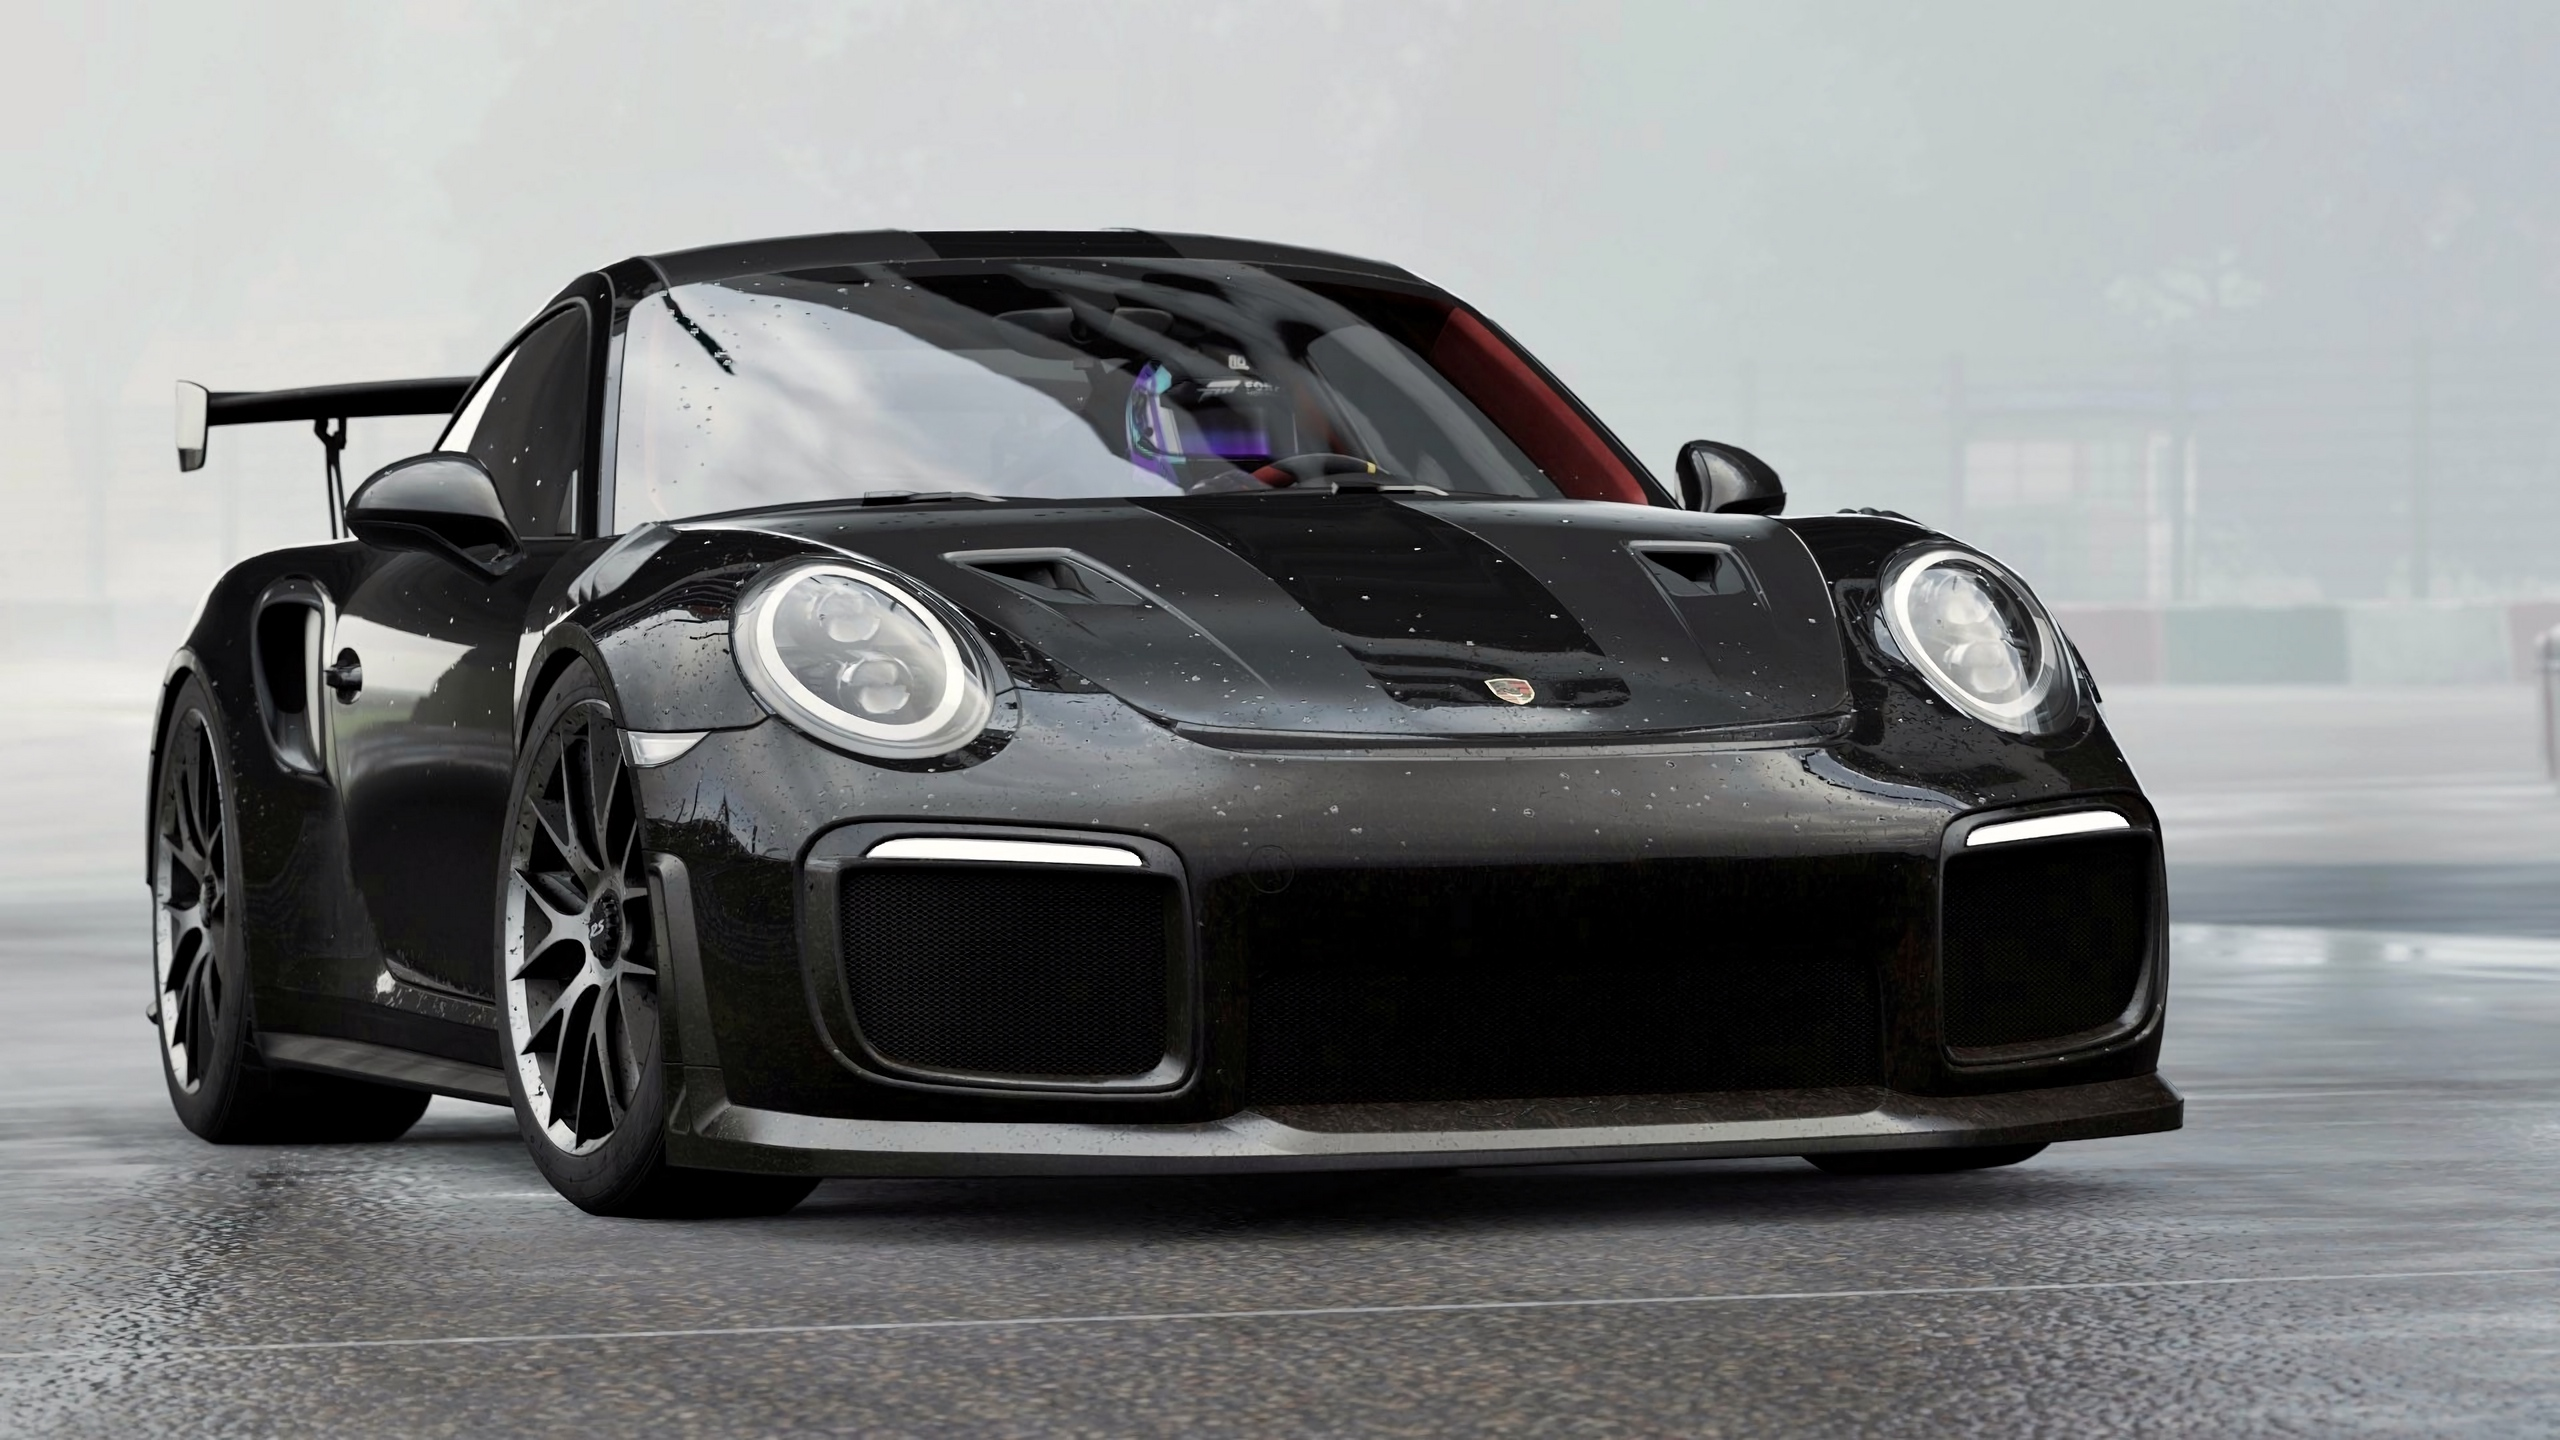 Wallpaper Porsche 911 Gt2 Rs Porsche 911 Porsche Porsche 911 Gt2 Rs Wallpaper Iphone 2560x1440 Wallpaper Teahub Io